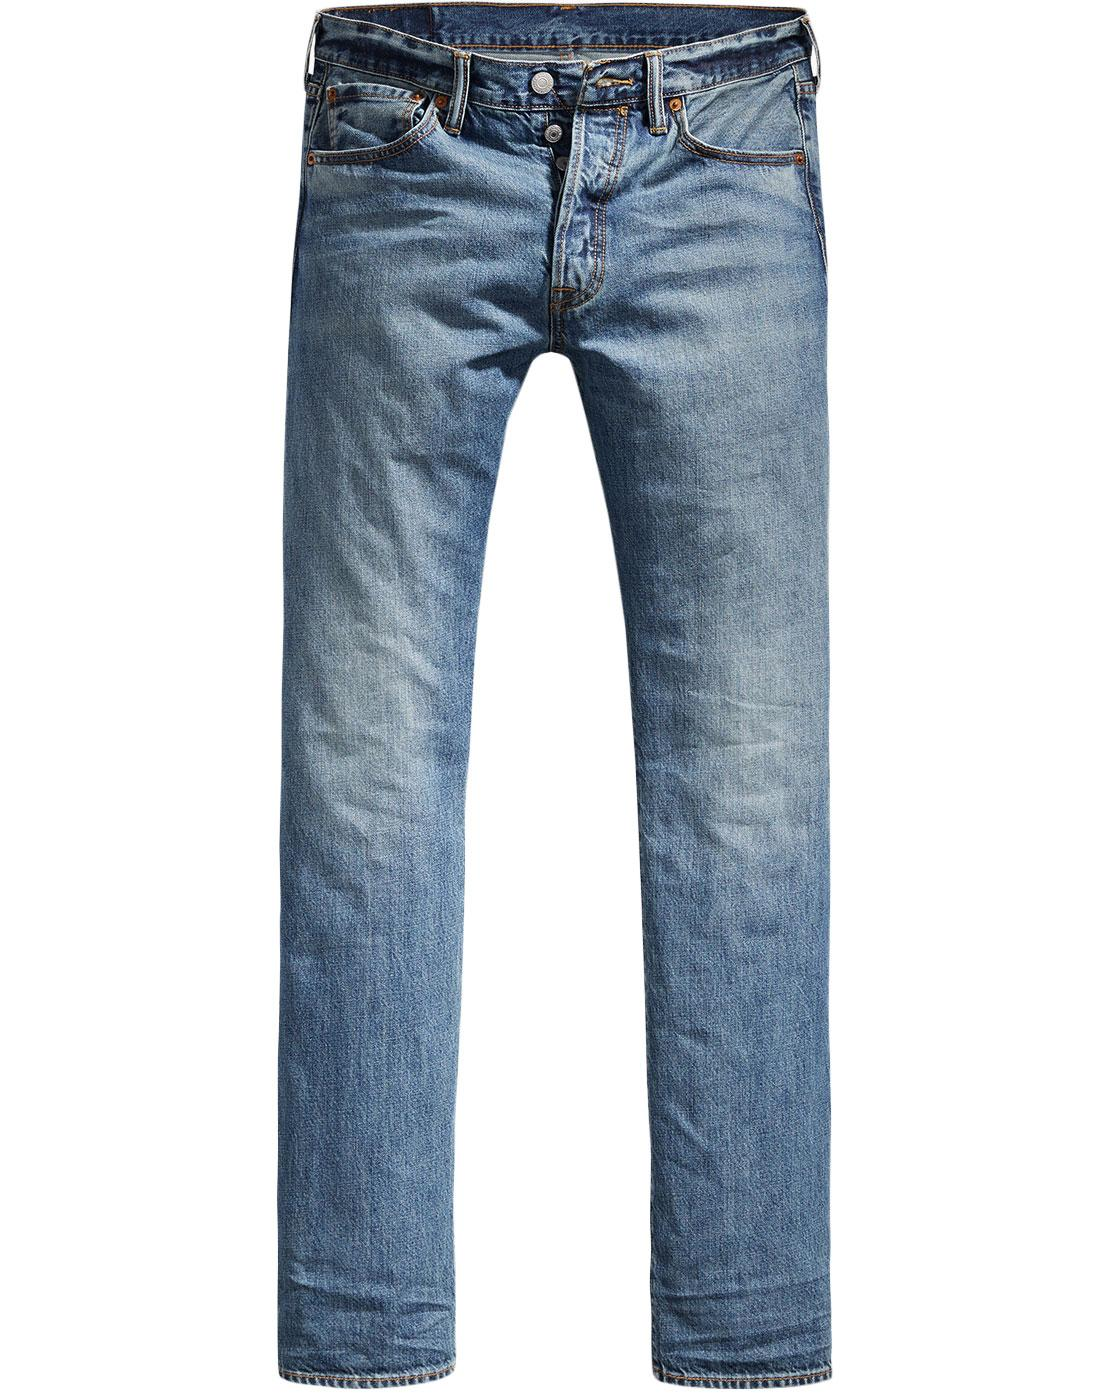 LEVI'S® 501 Original Straight Jeans PINK SAND COOL